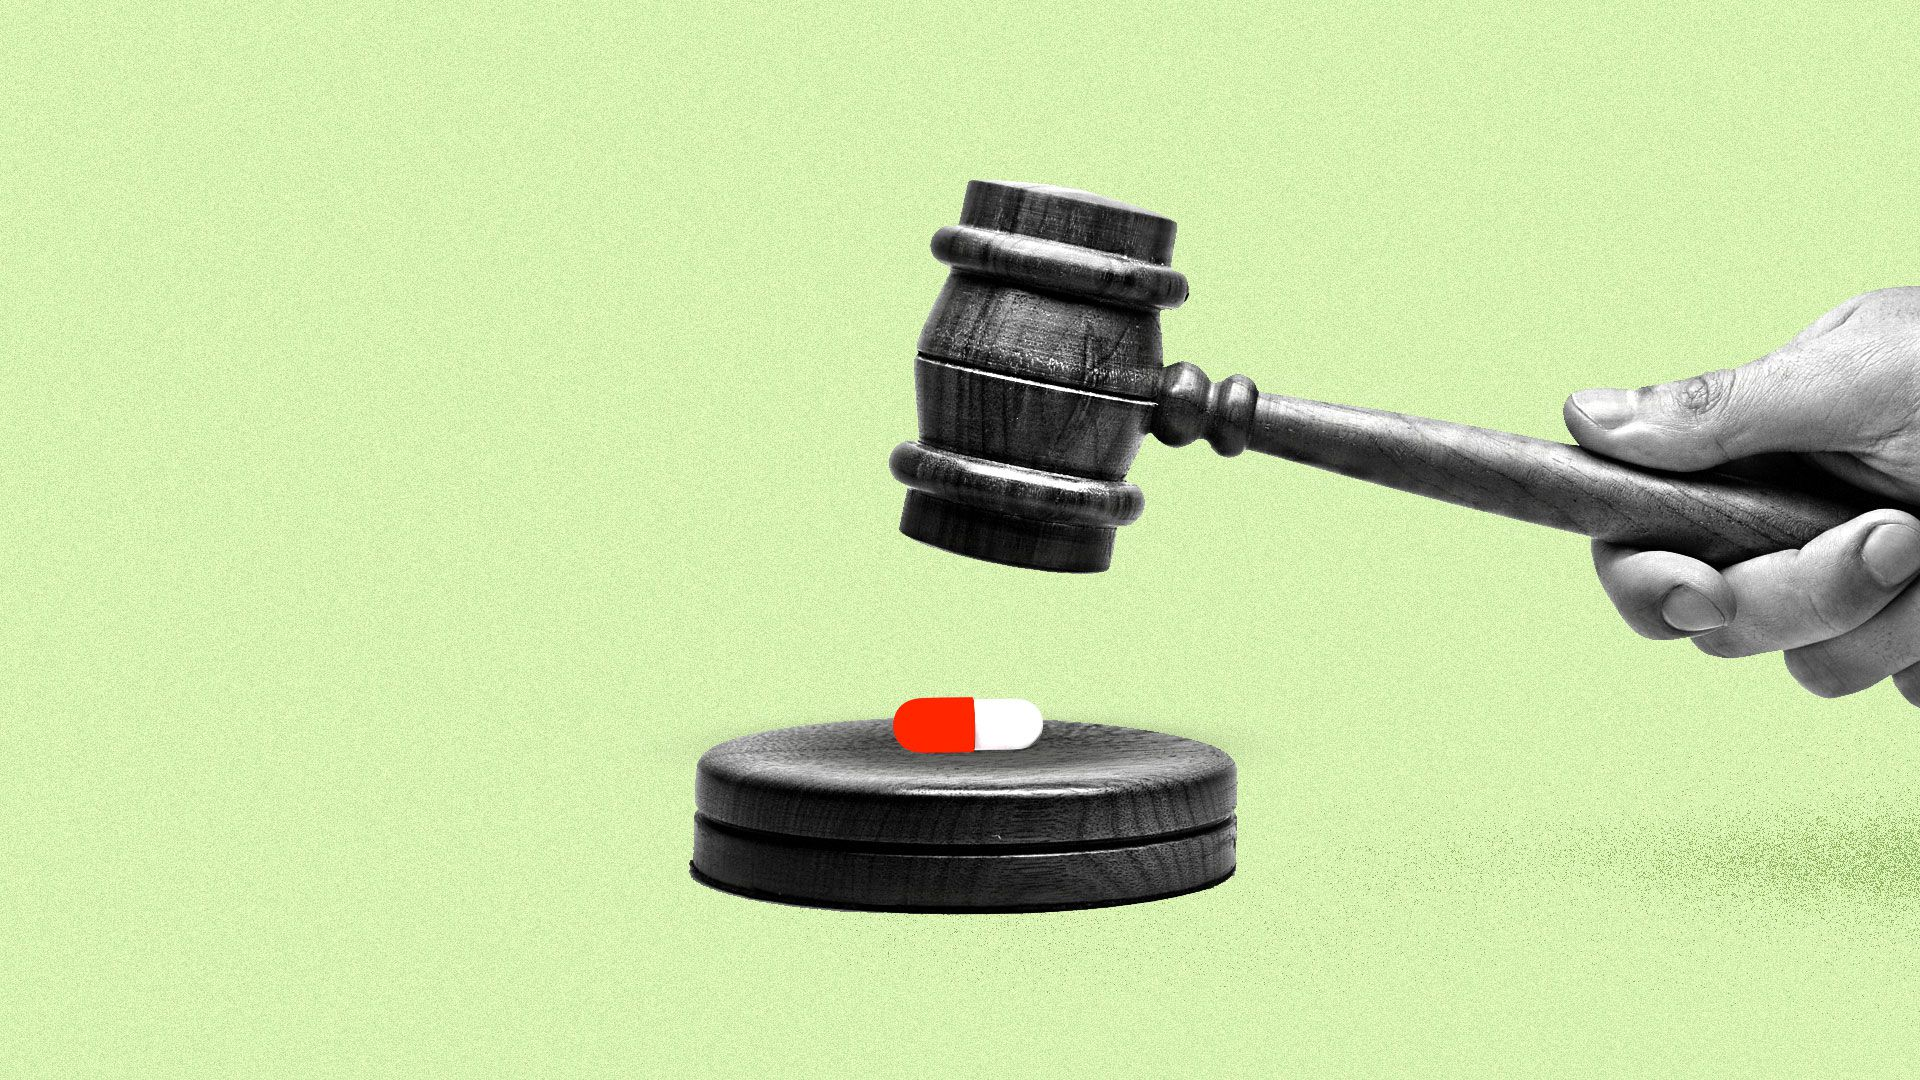 A judge's gavel about to crush a red and white pill